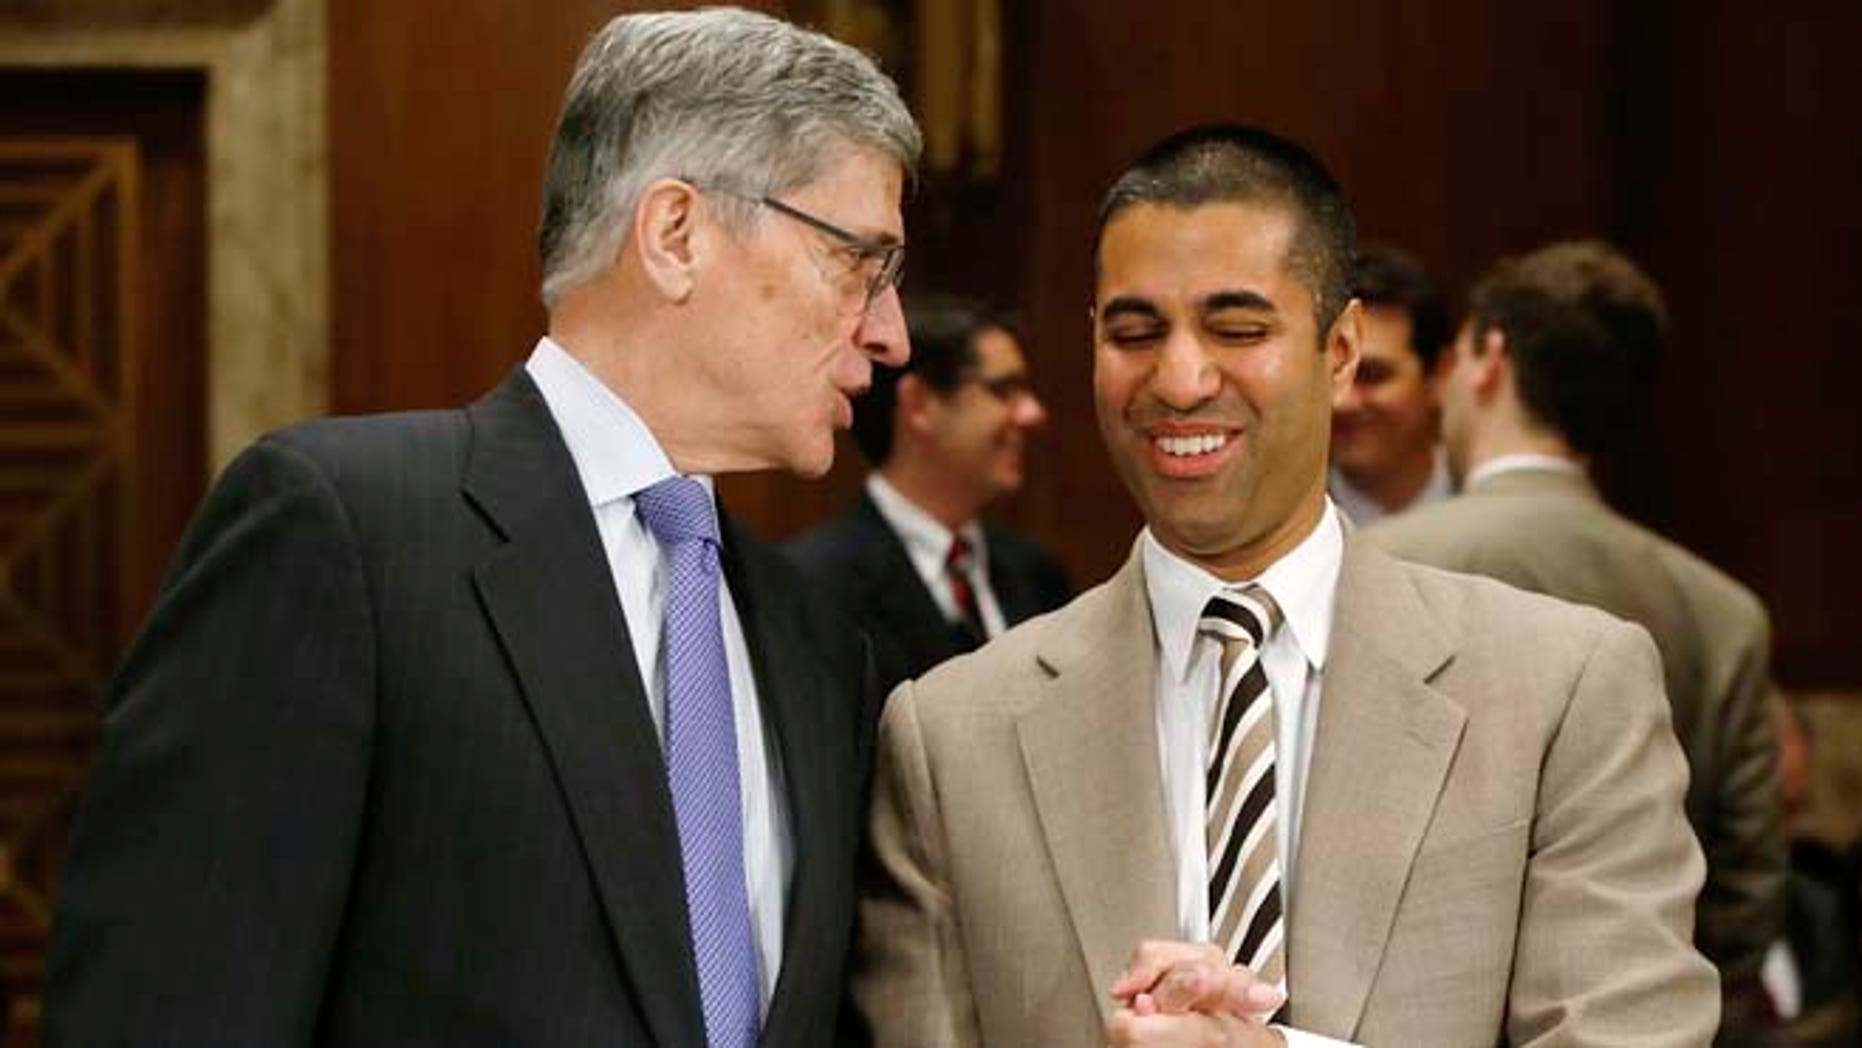 In this March 27, 2014 photo, Federal Communications Commission (FCC) Chairman Tom Wheeler, left, and FCC Commissioner Ajit Pai arrive to testify before a Senate subcommittee in Washington, D.C.